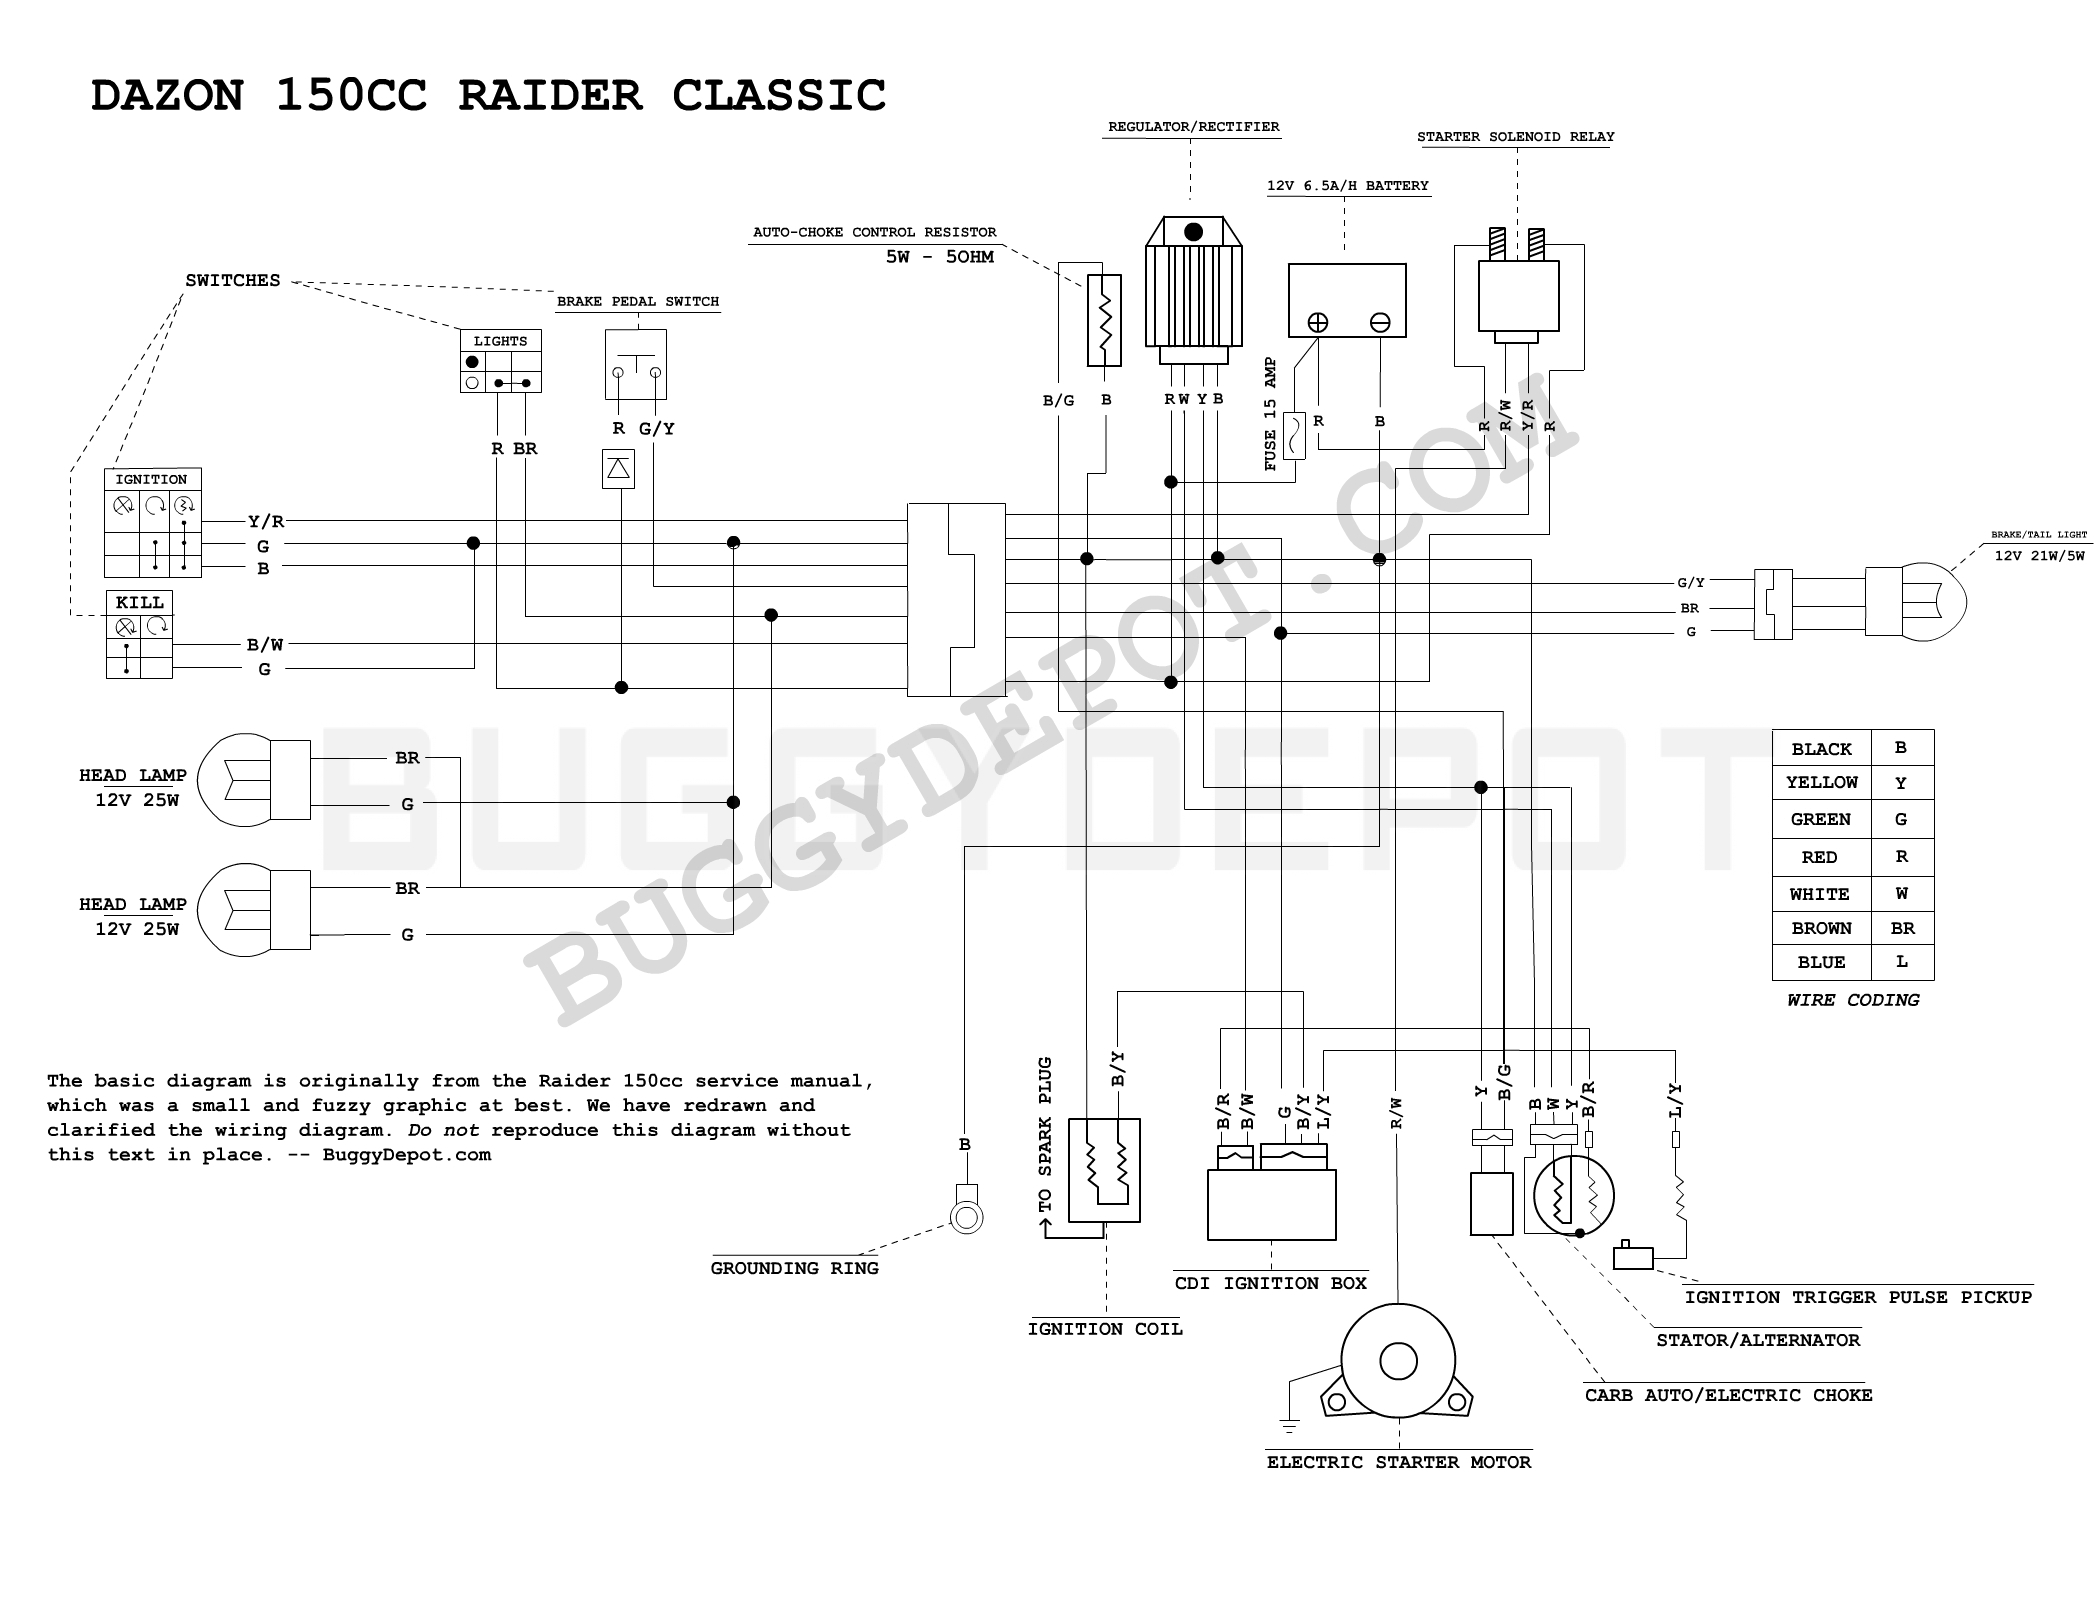 article_33_1278205207 dazon raider classic wiring diagram buggy depot technical center gy6 buggy wiring harness at gsmx.co